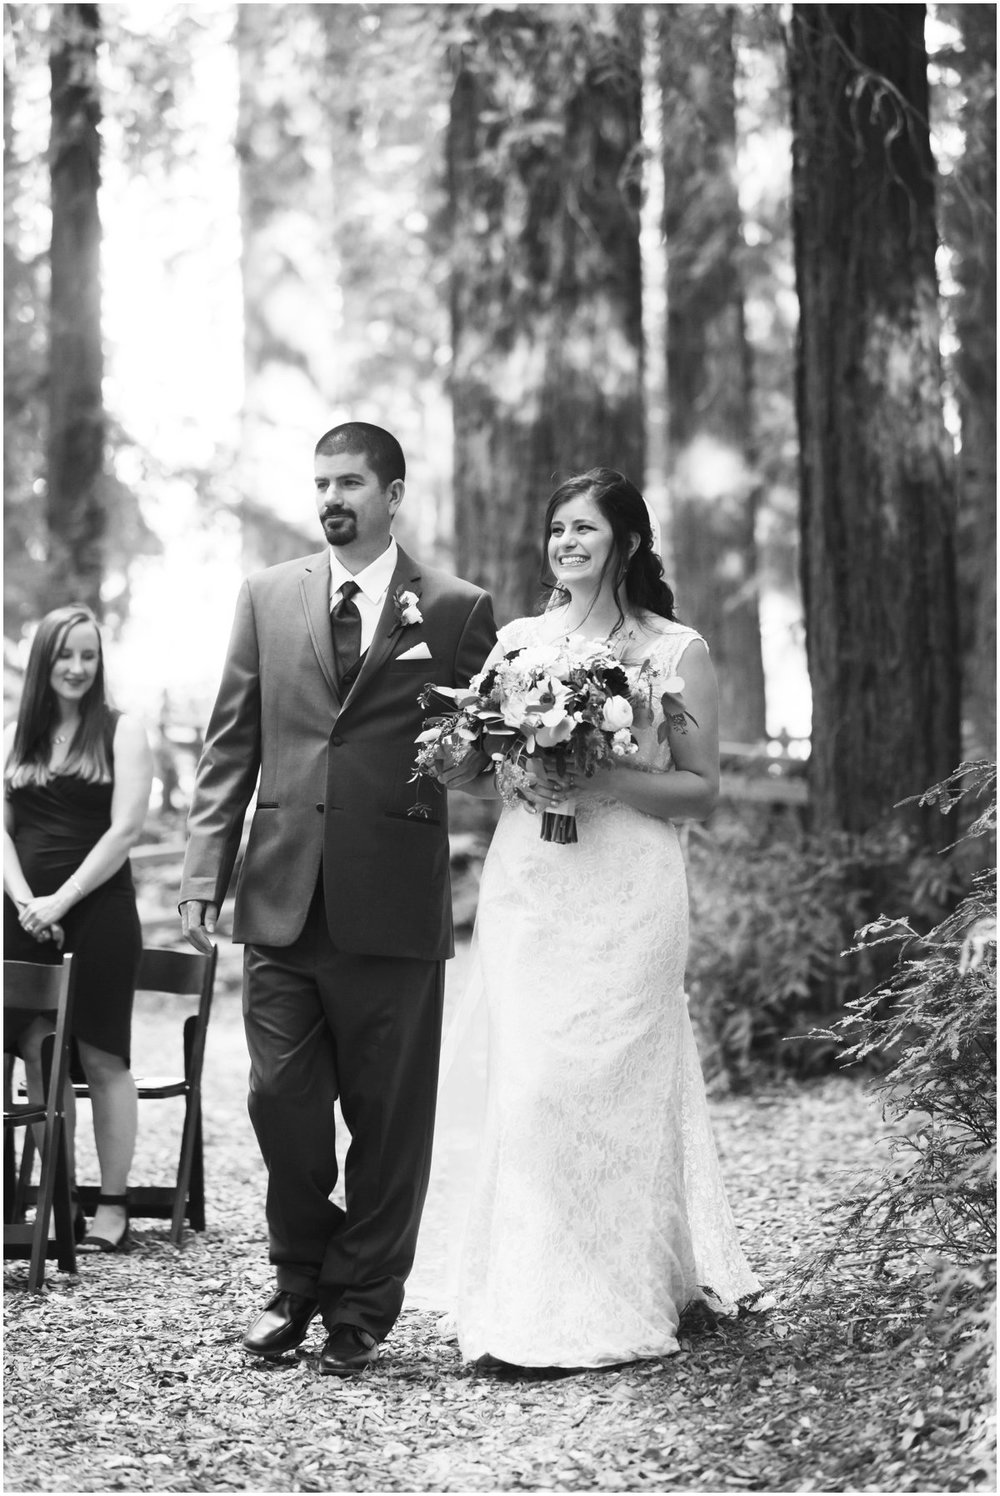 Selena smiling from ear to ear as she walks down the aisle to her groom